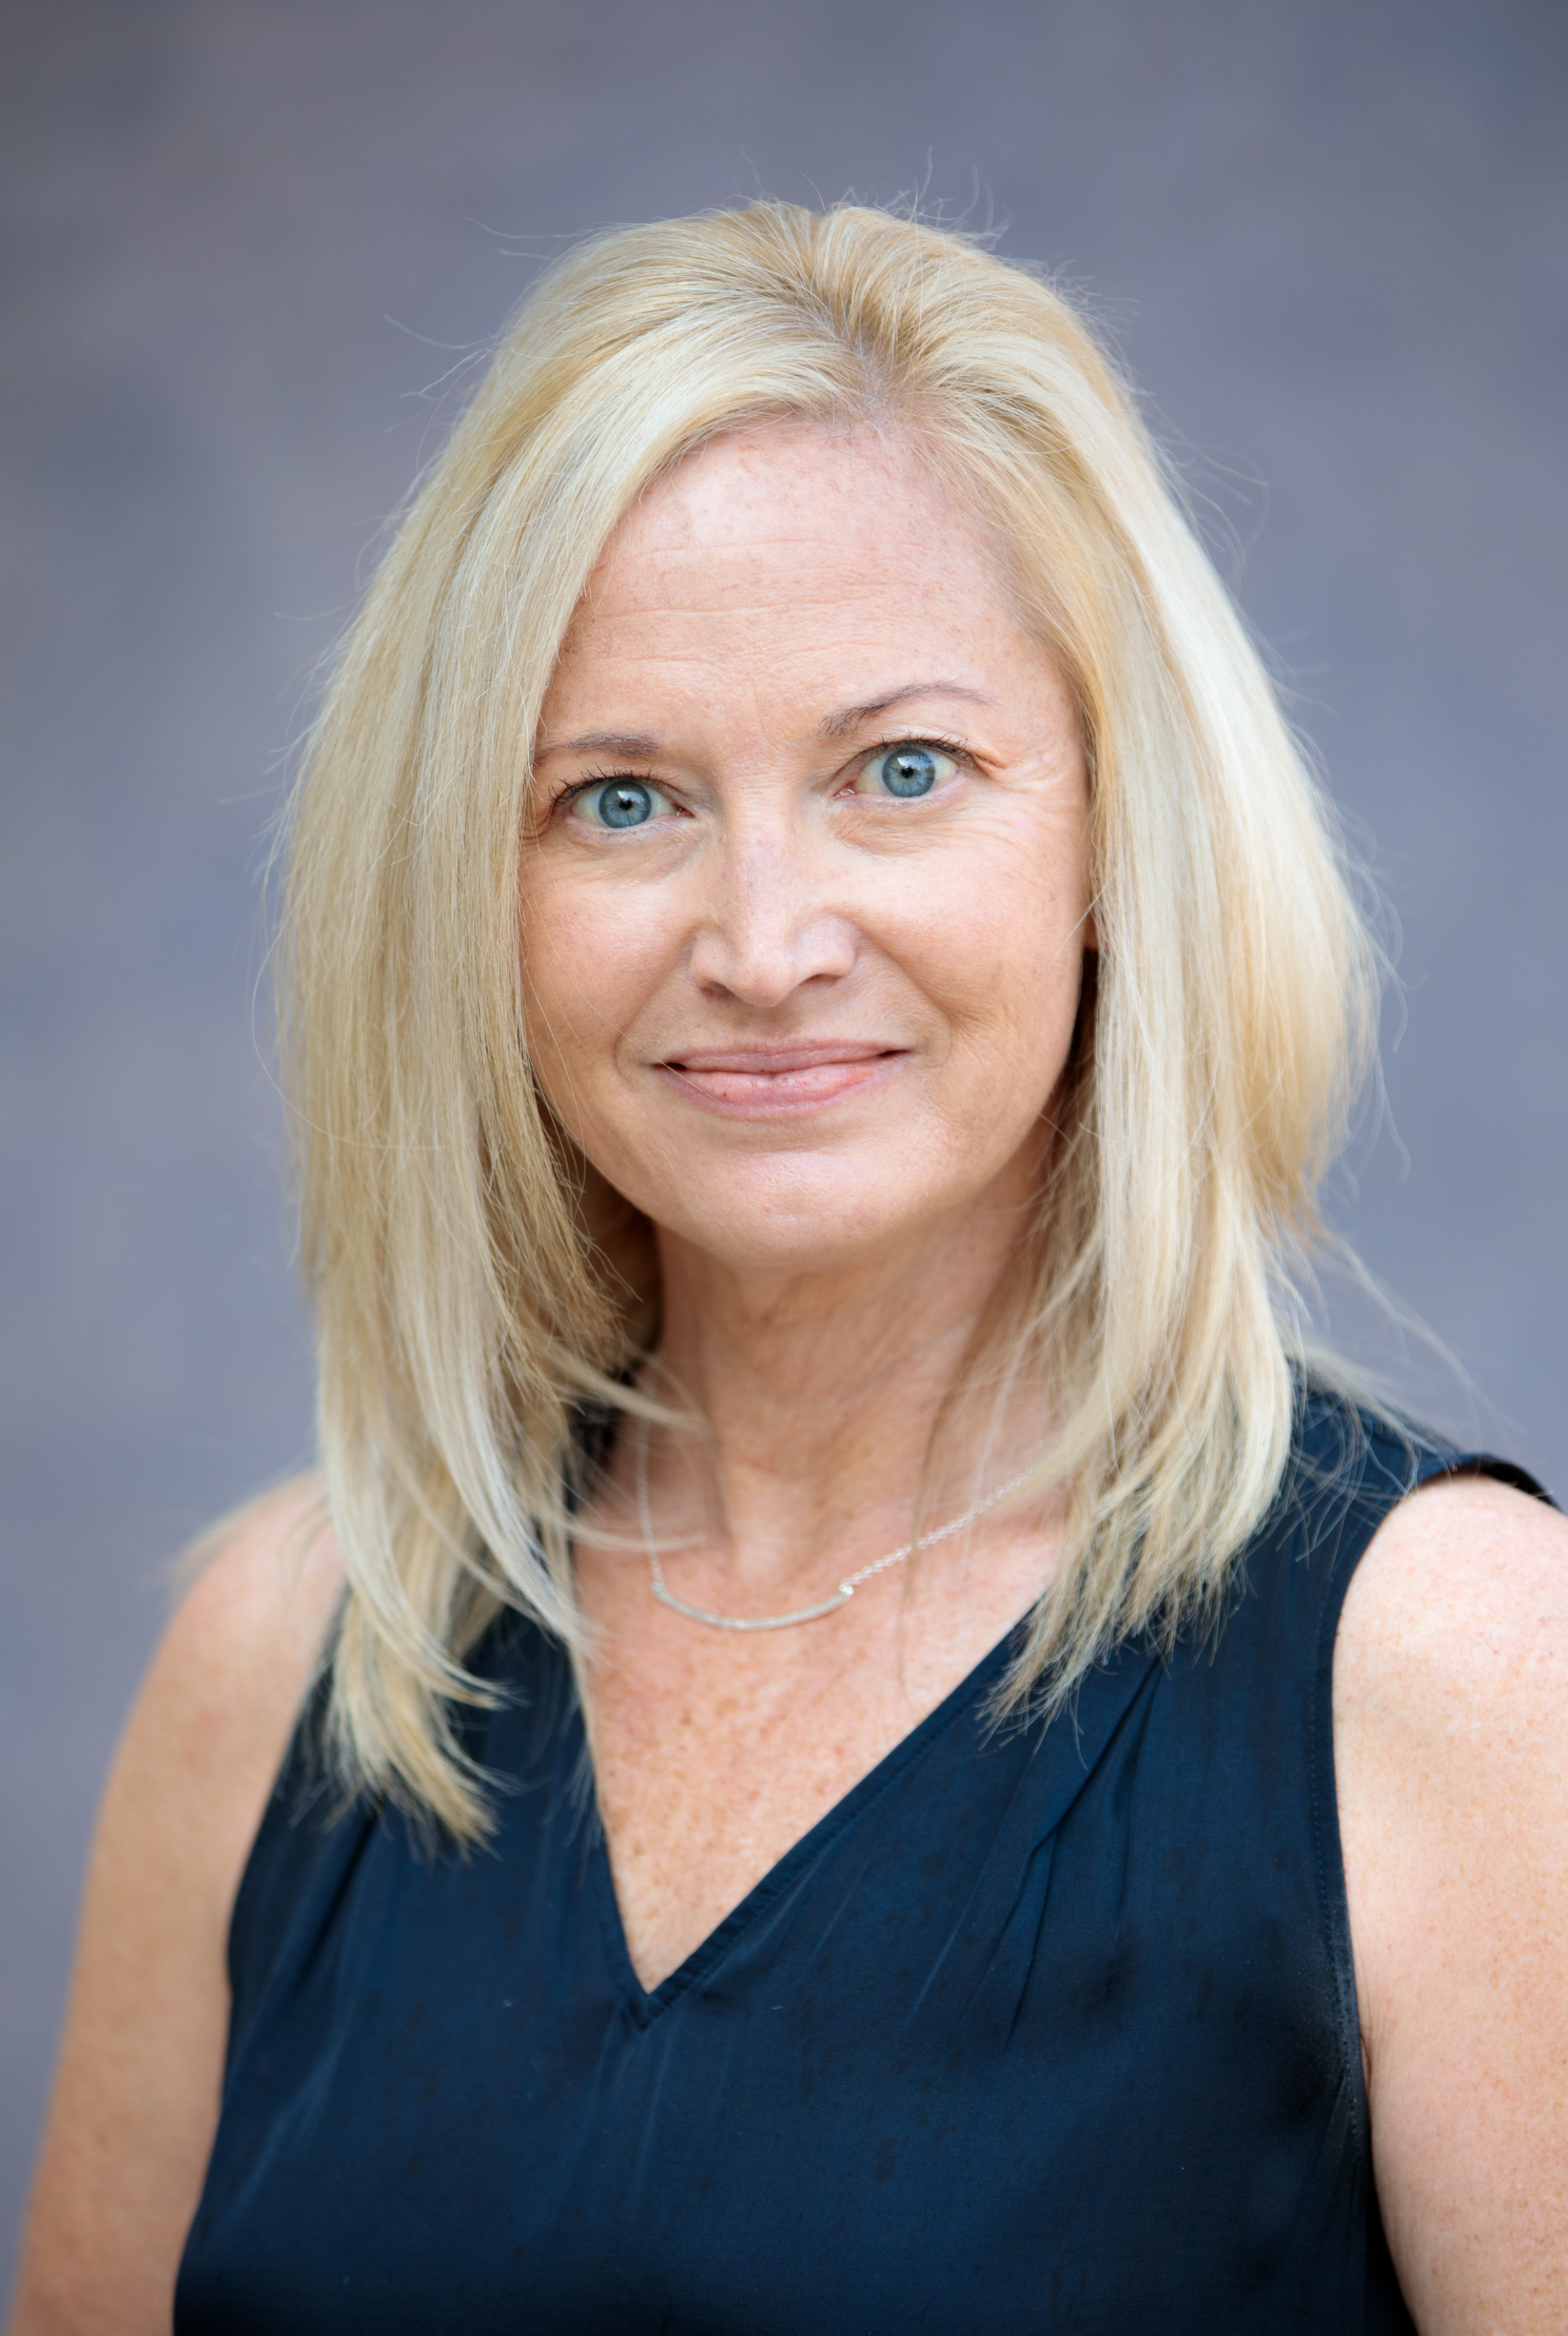 Picture of Kim Bissell, Ph.D.